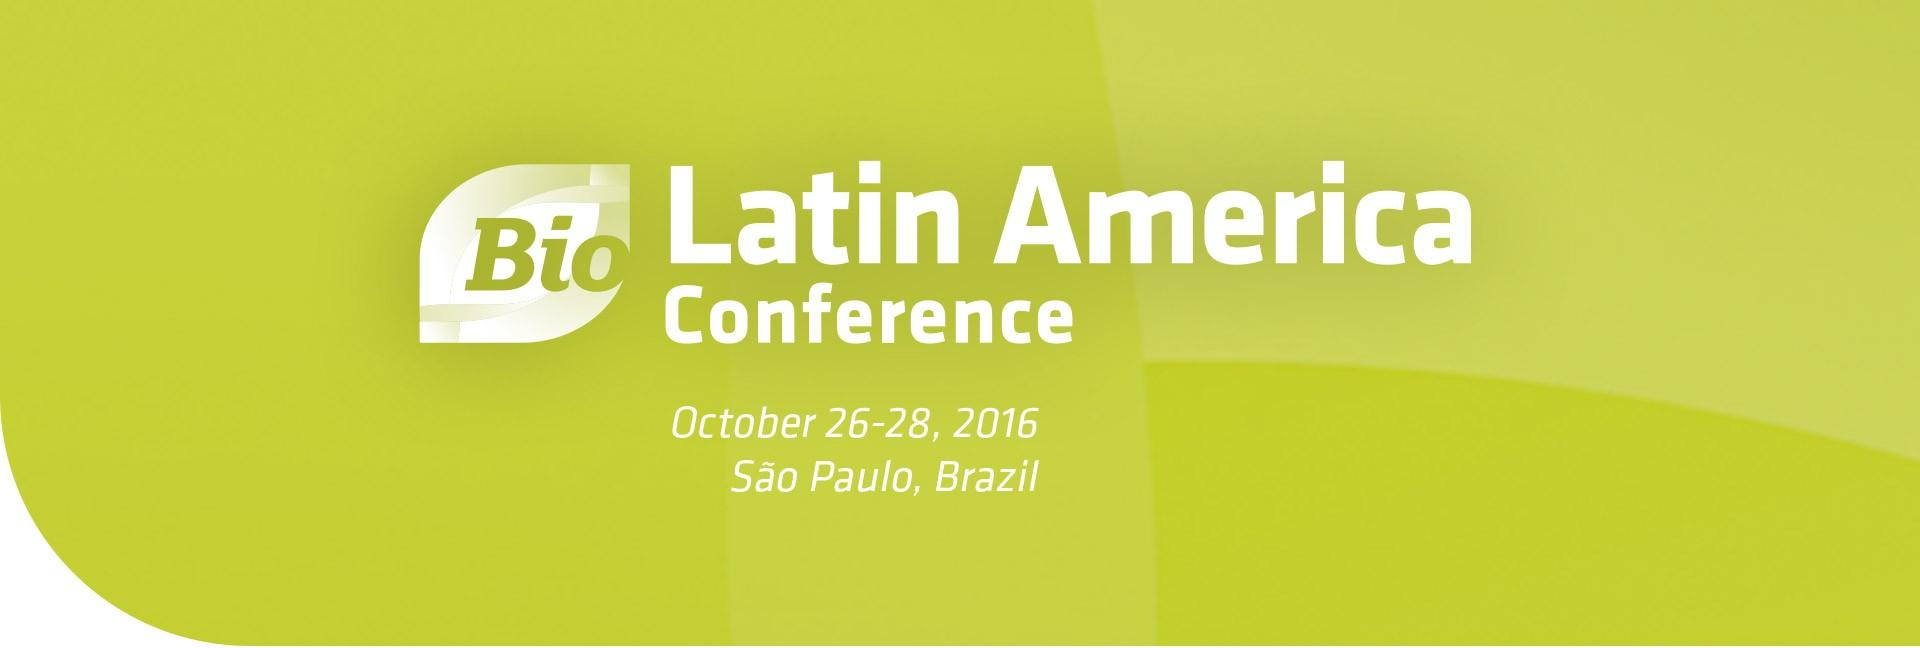 BIO Latin America is the ideal venue to explore the innovation and partnering opportunities in Latin America's rapidly-growing life science industry. Join high level executives, government leaders, academics and investors from around the globe to discuss